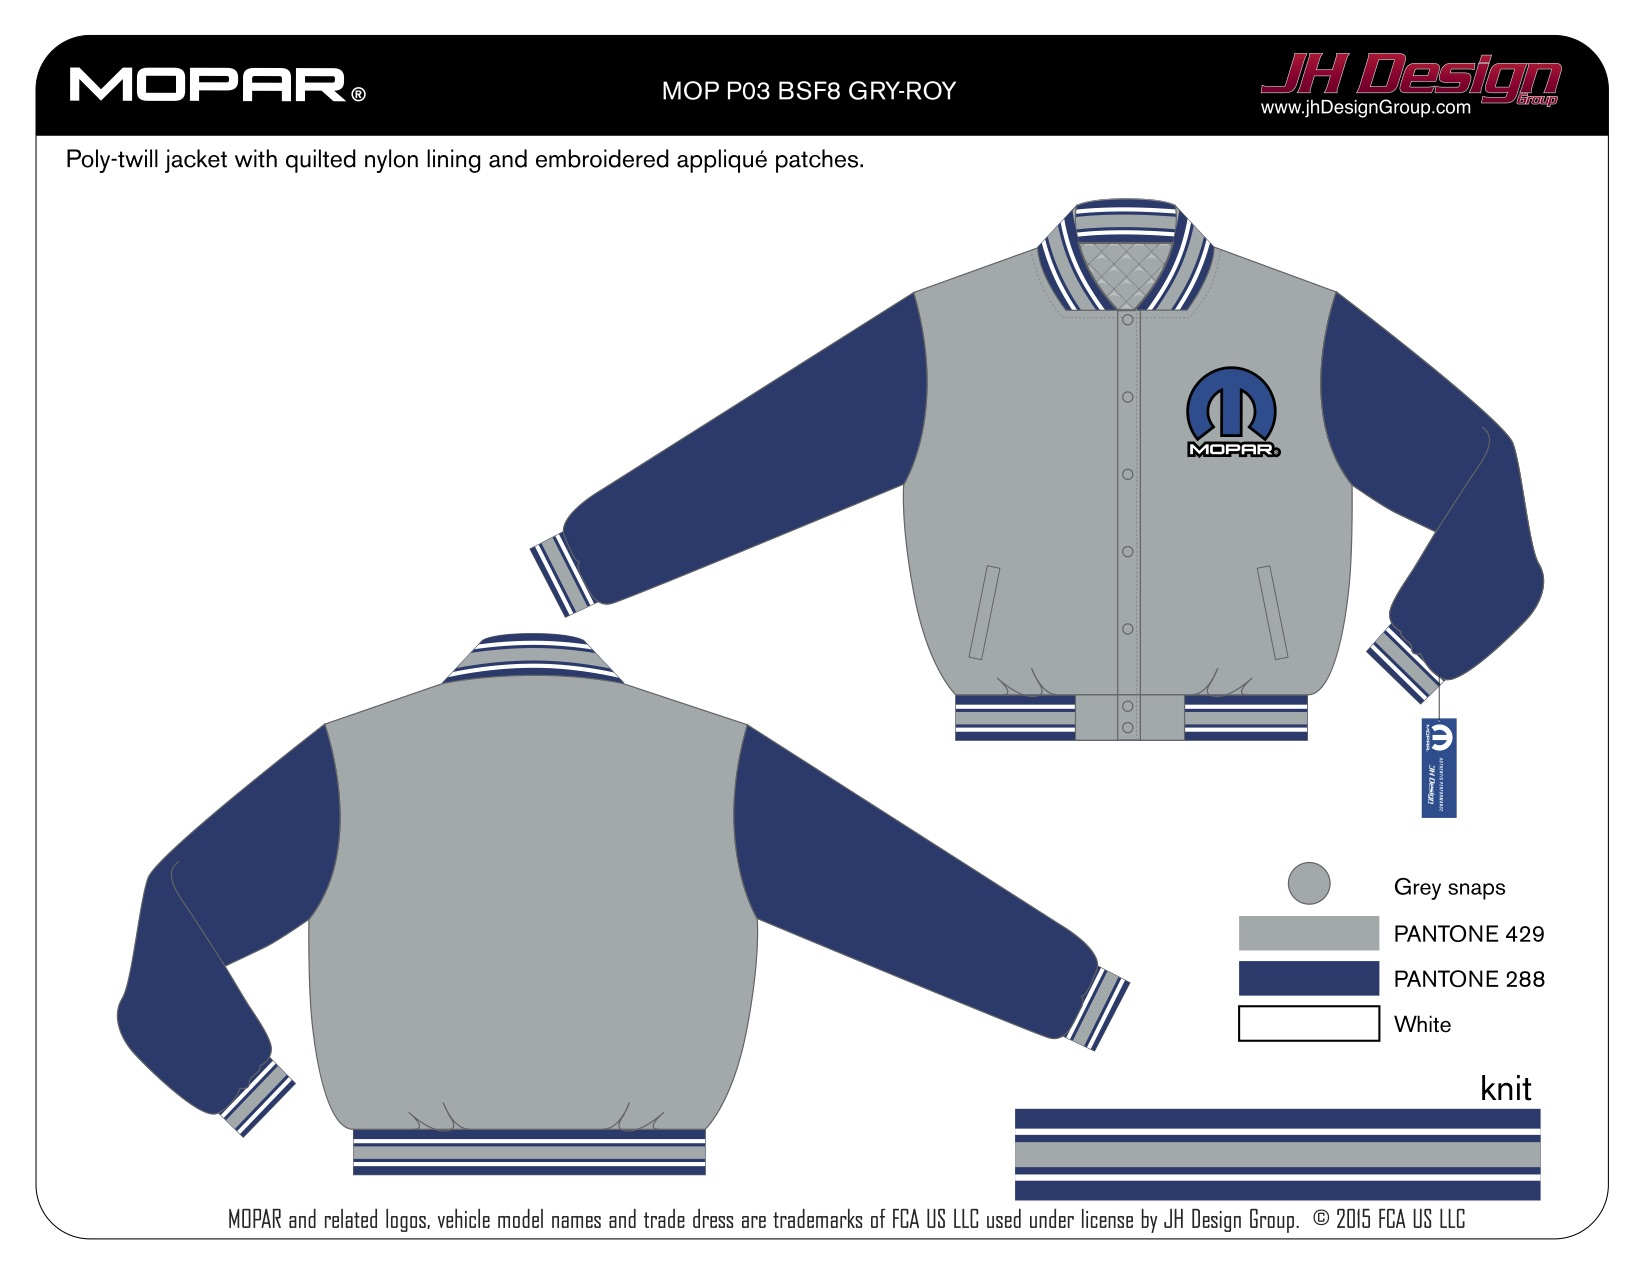 MOP P03 BSF8 GRY-ROY